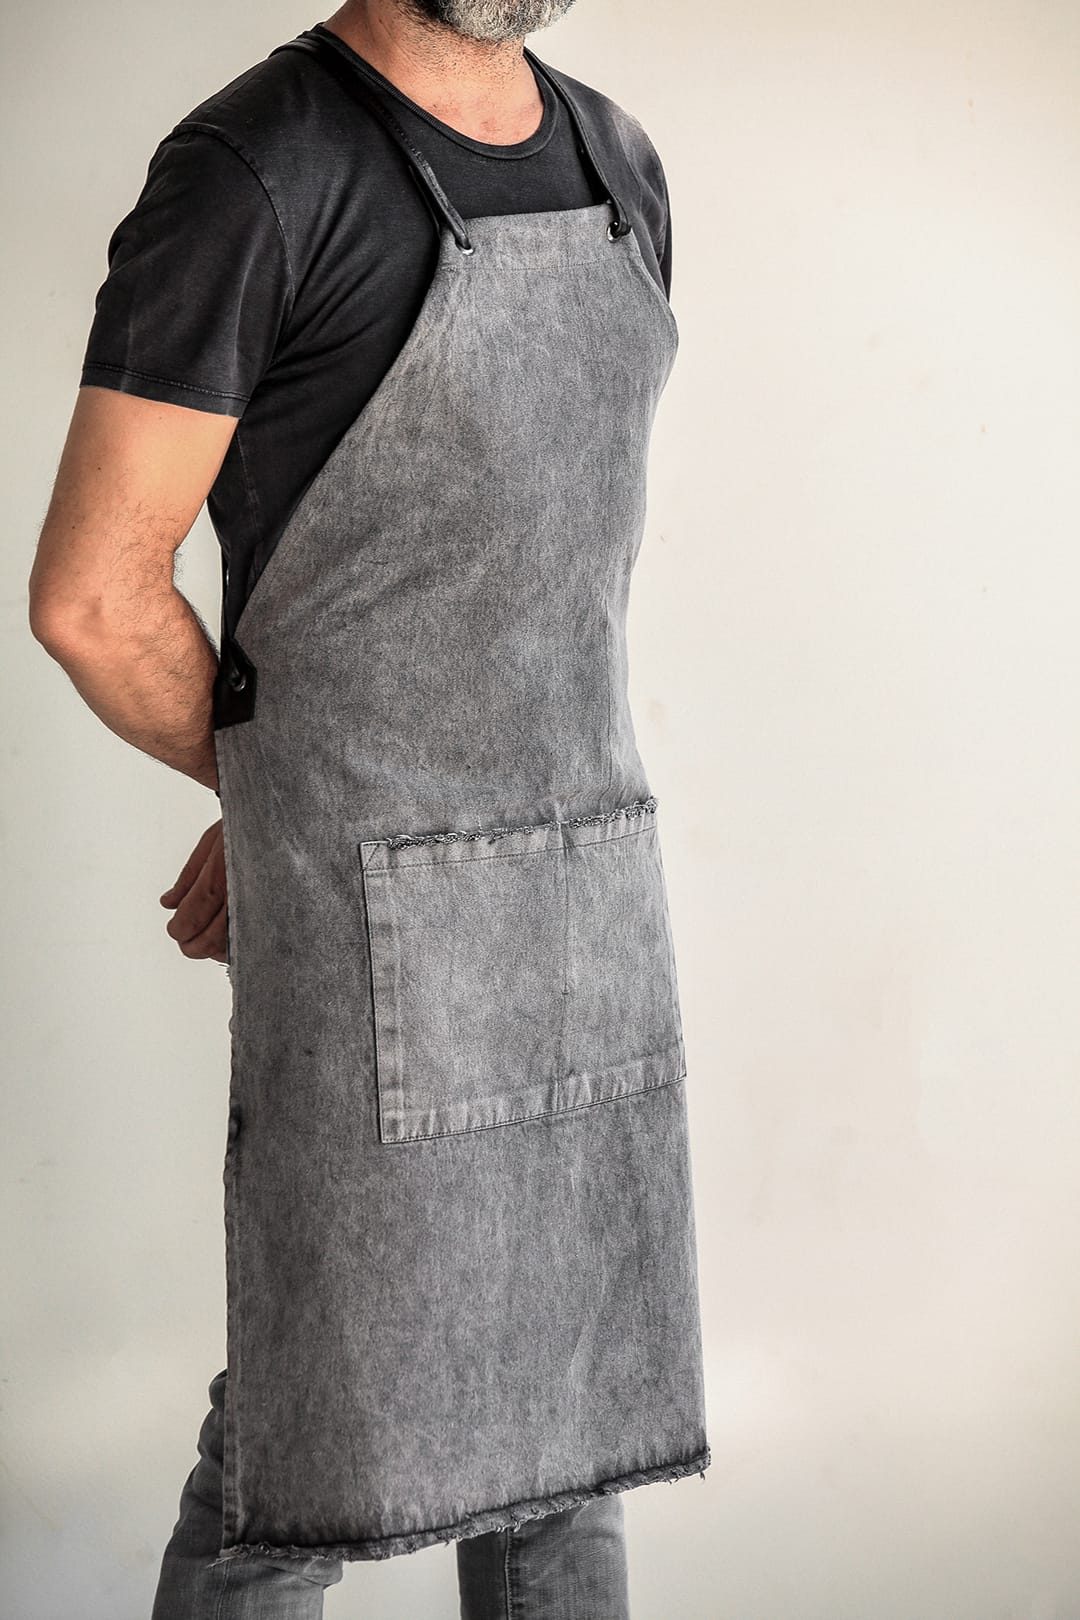 aprons section